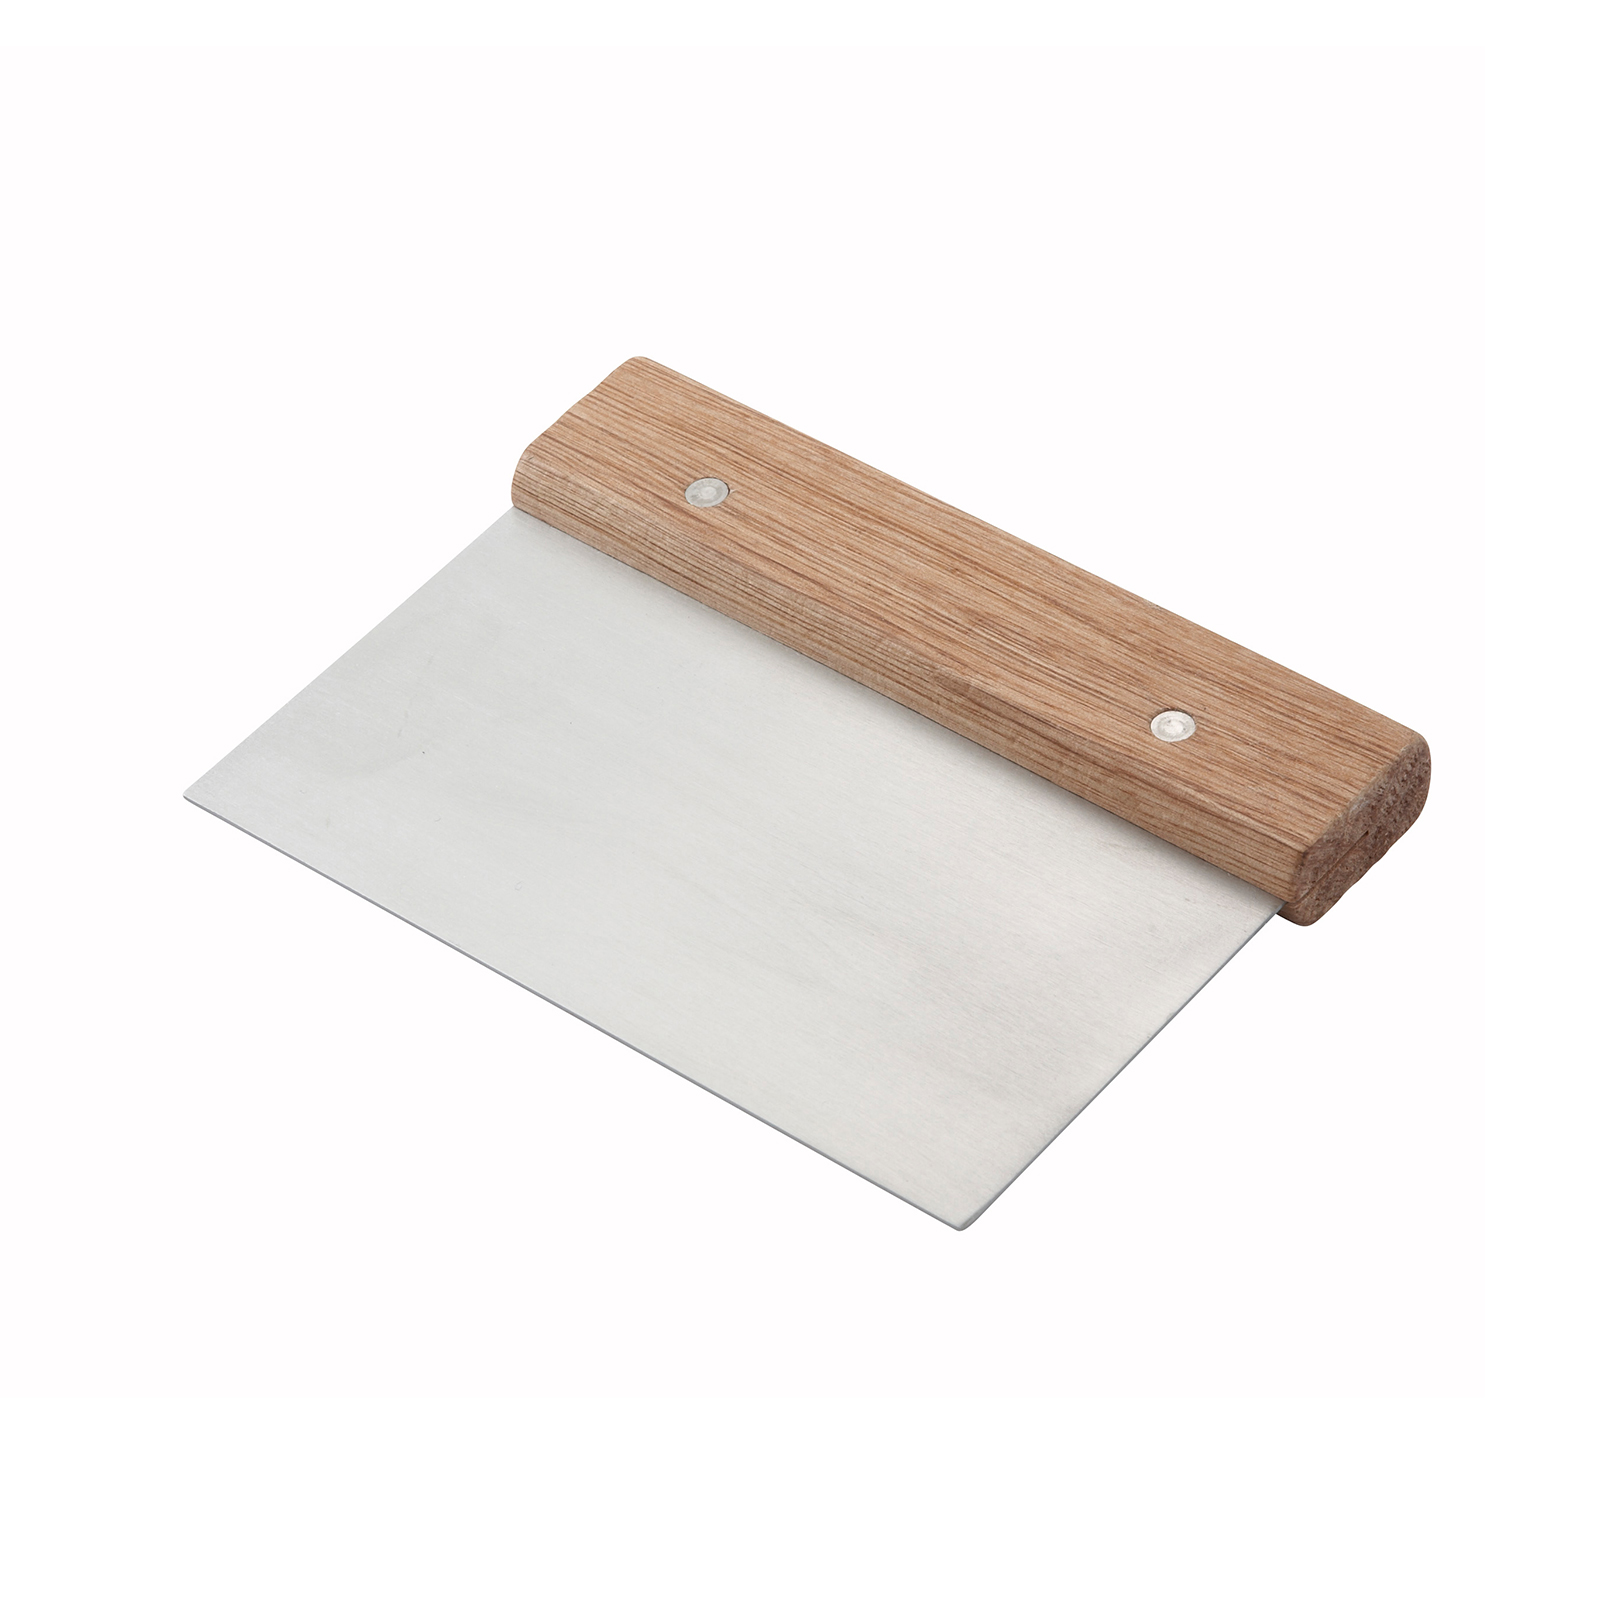 Winco DSC-3 dough cutter/scraper